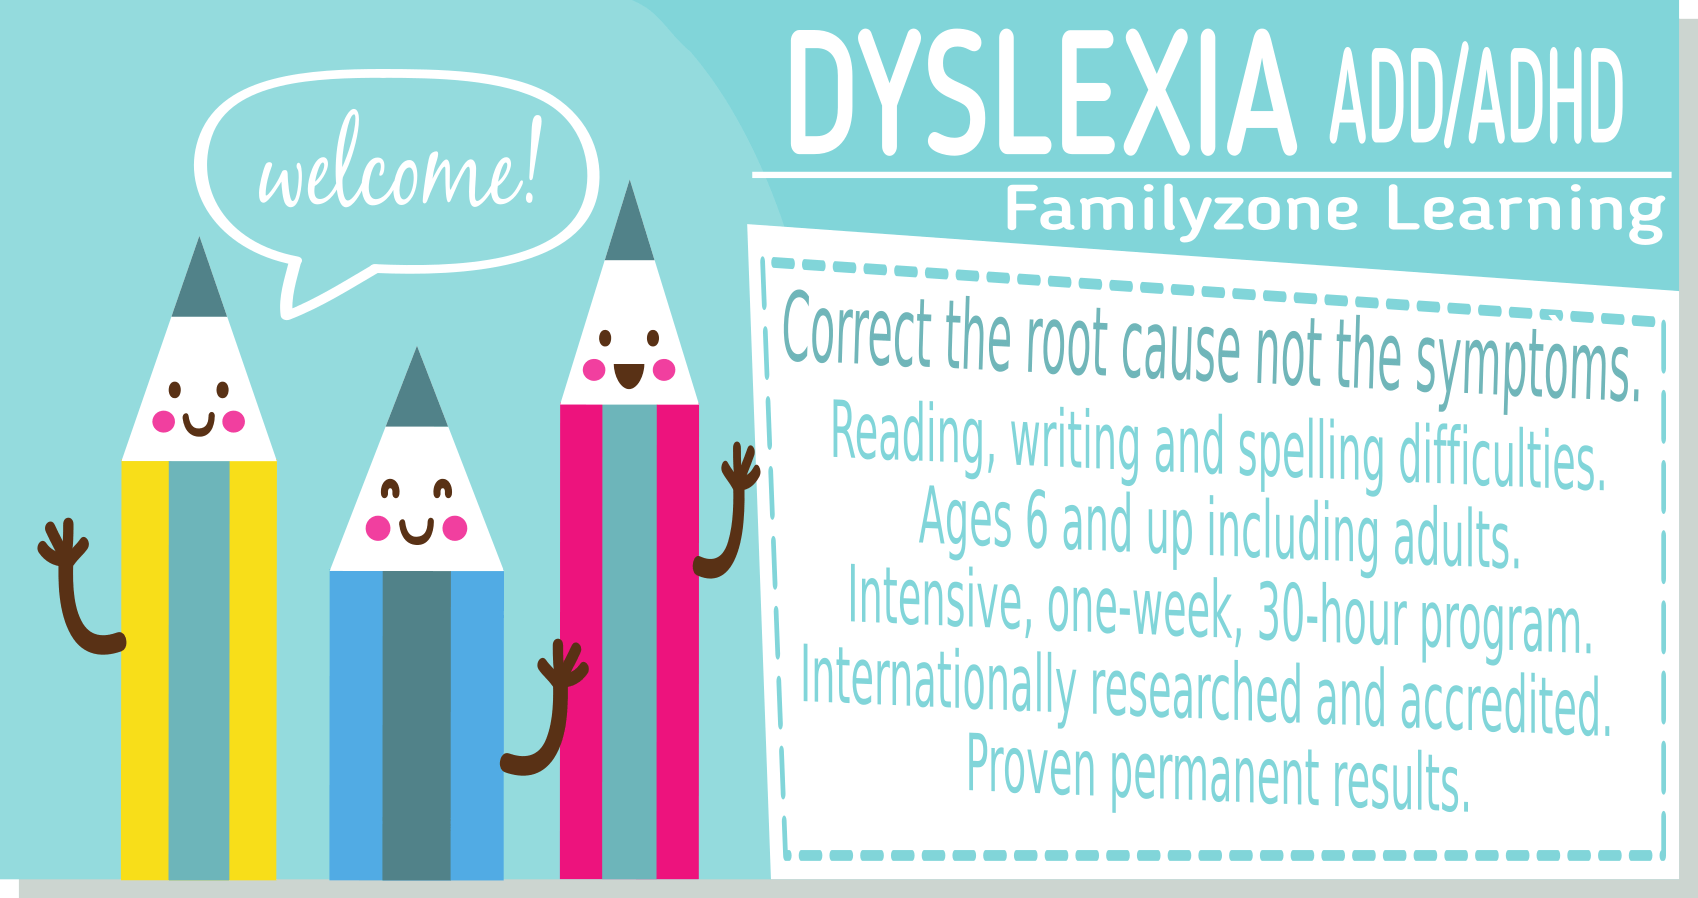 Familyzone davis dyslexia correction program. For all ages. Proven permanent results. Dyslexia tour.